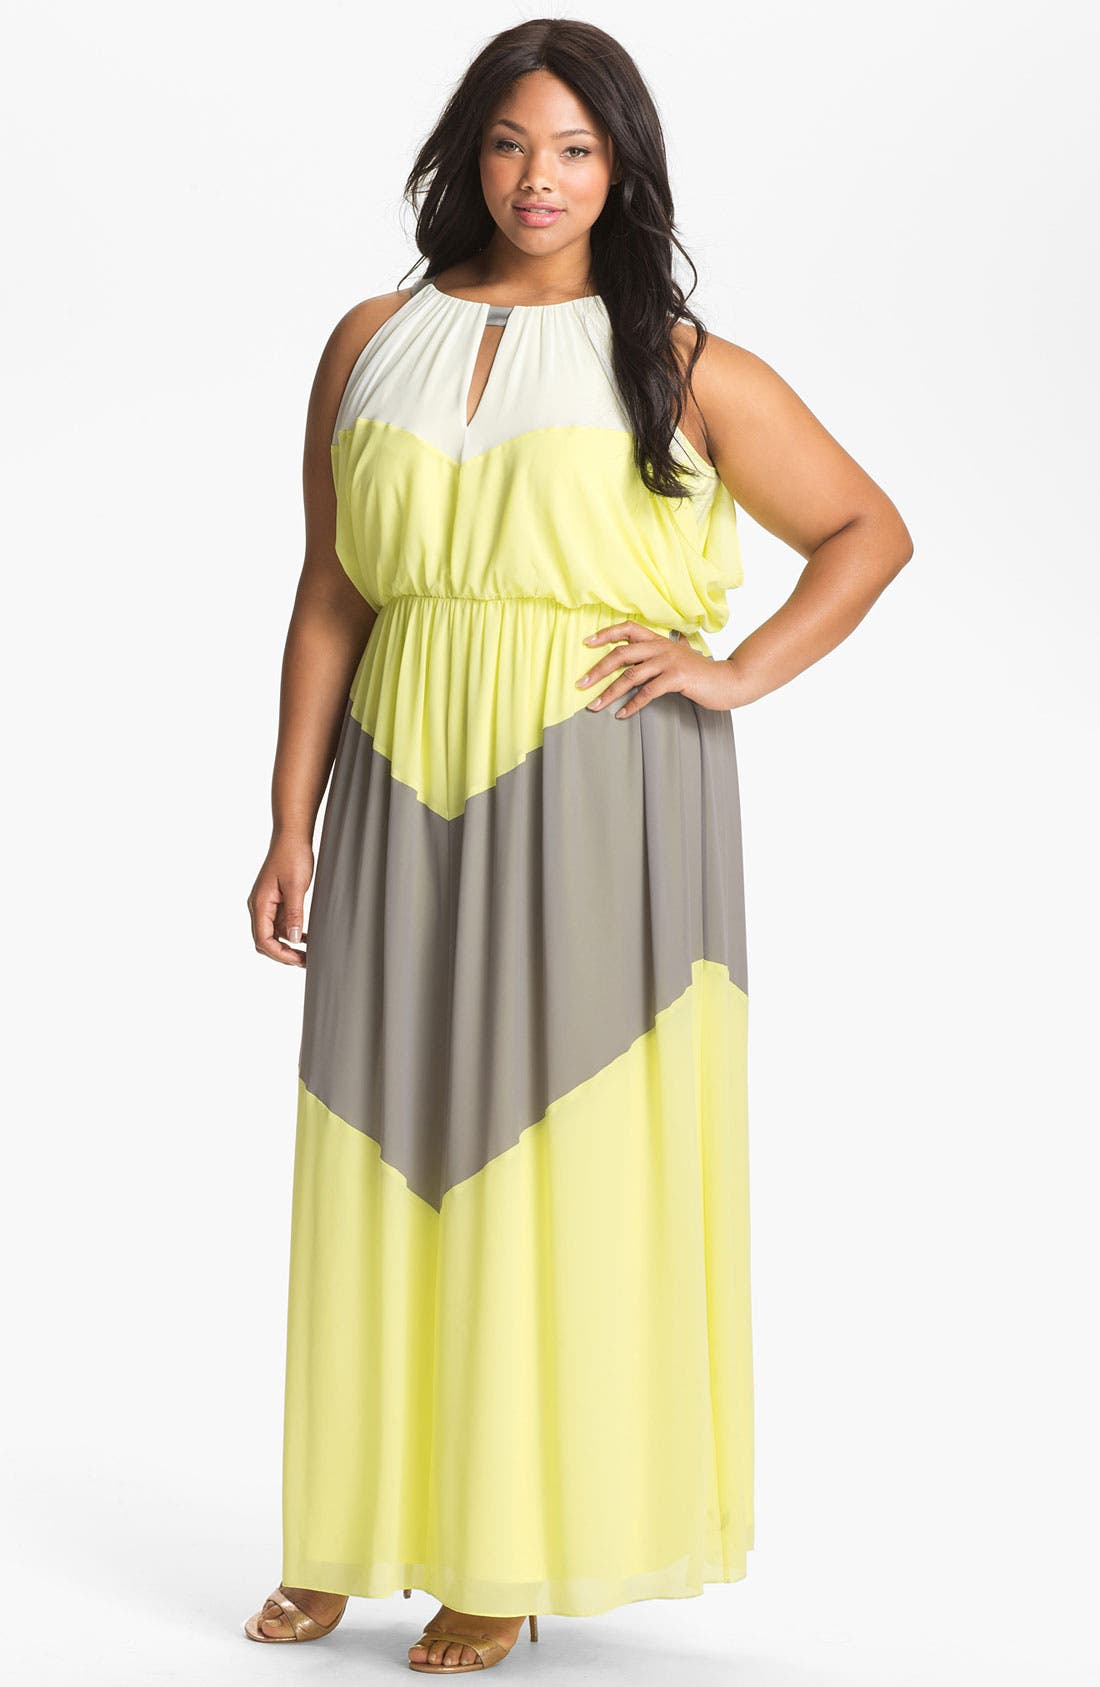 Alternate Image 1 Selected - Vince Camuto Colorblock Maxi Dress (Plus Size)